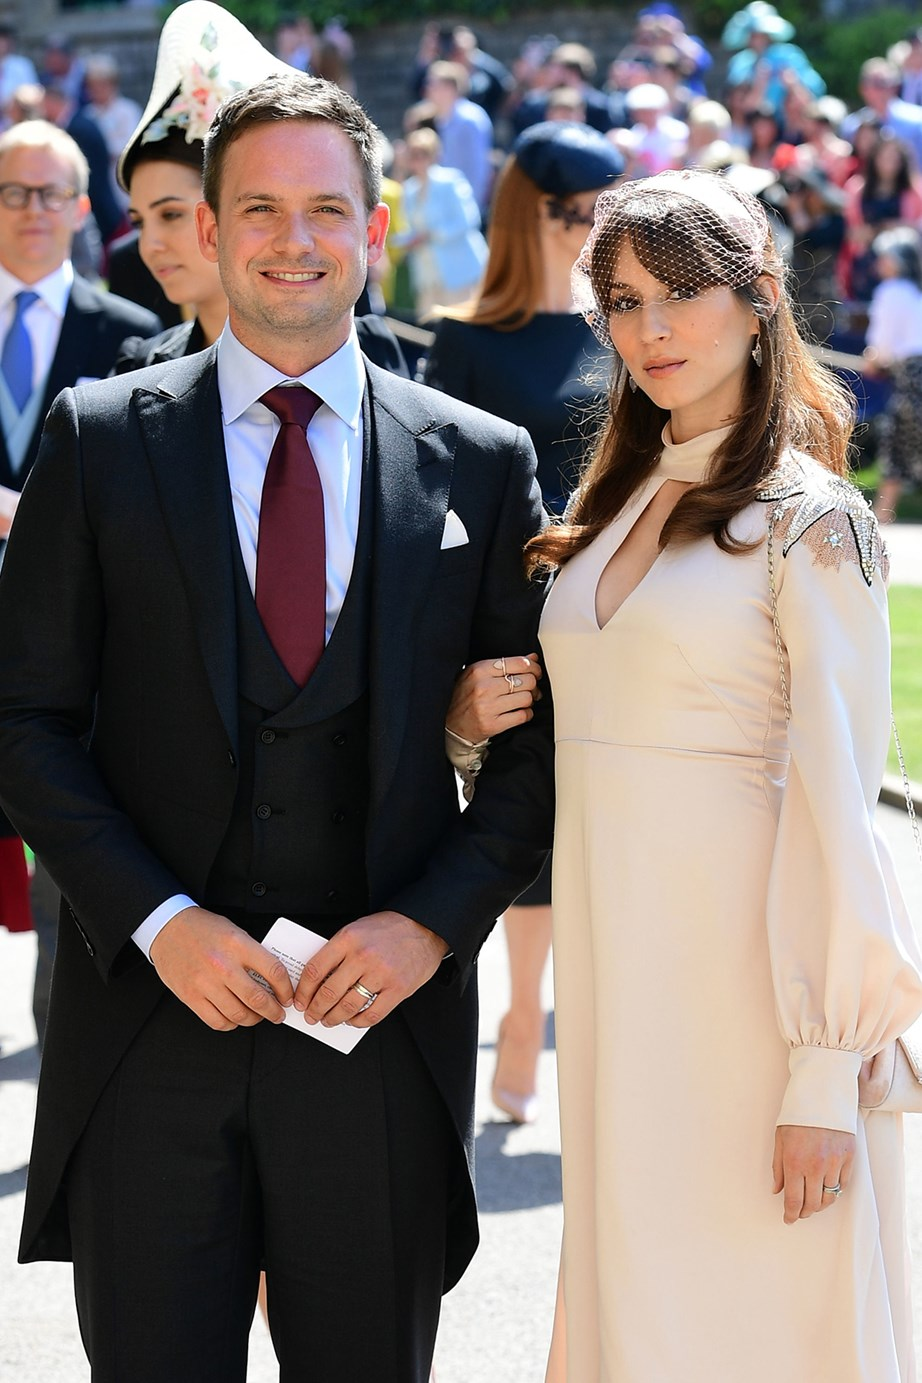 Patrick J Adams and his wife and actress Troian Bellisario at Prince Harry and Meghan's wedding last year. *(Image: Getty)*